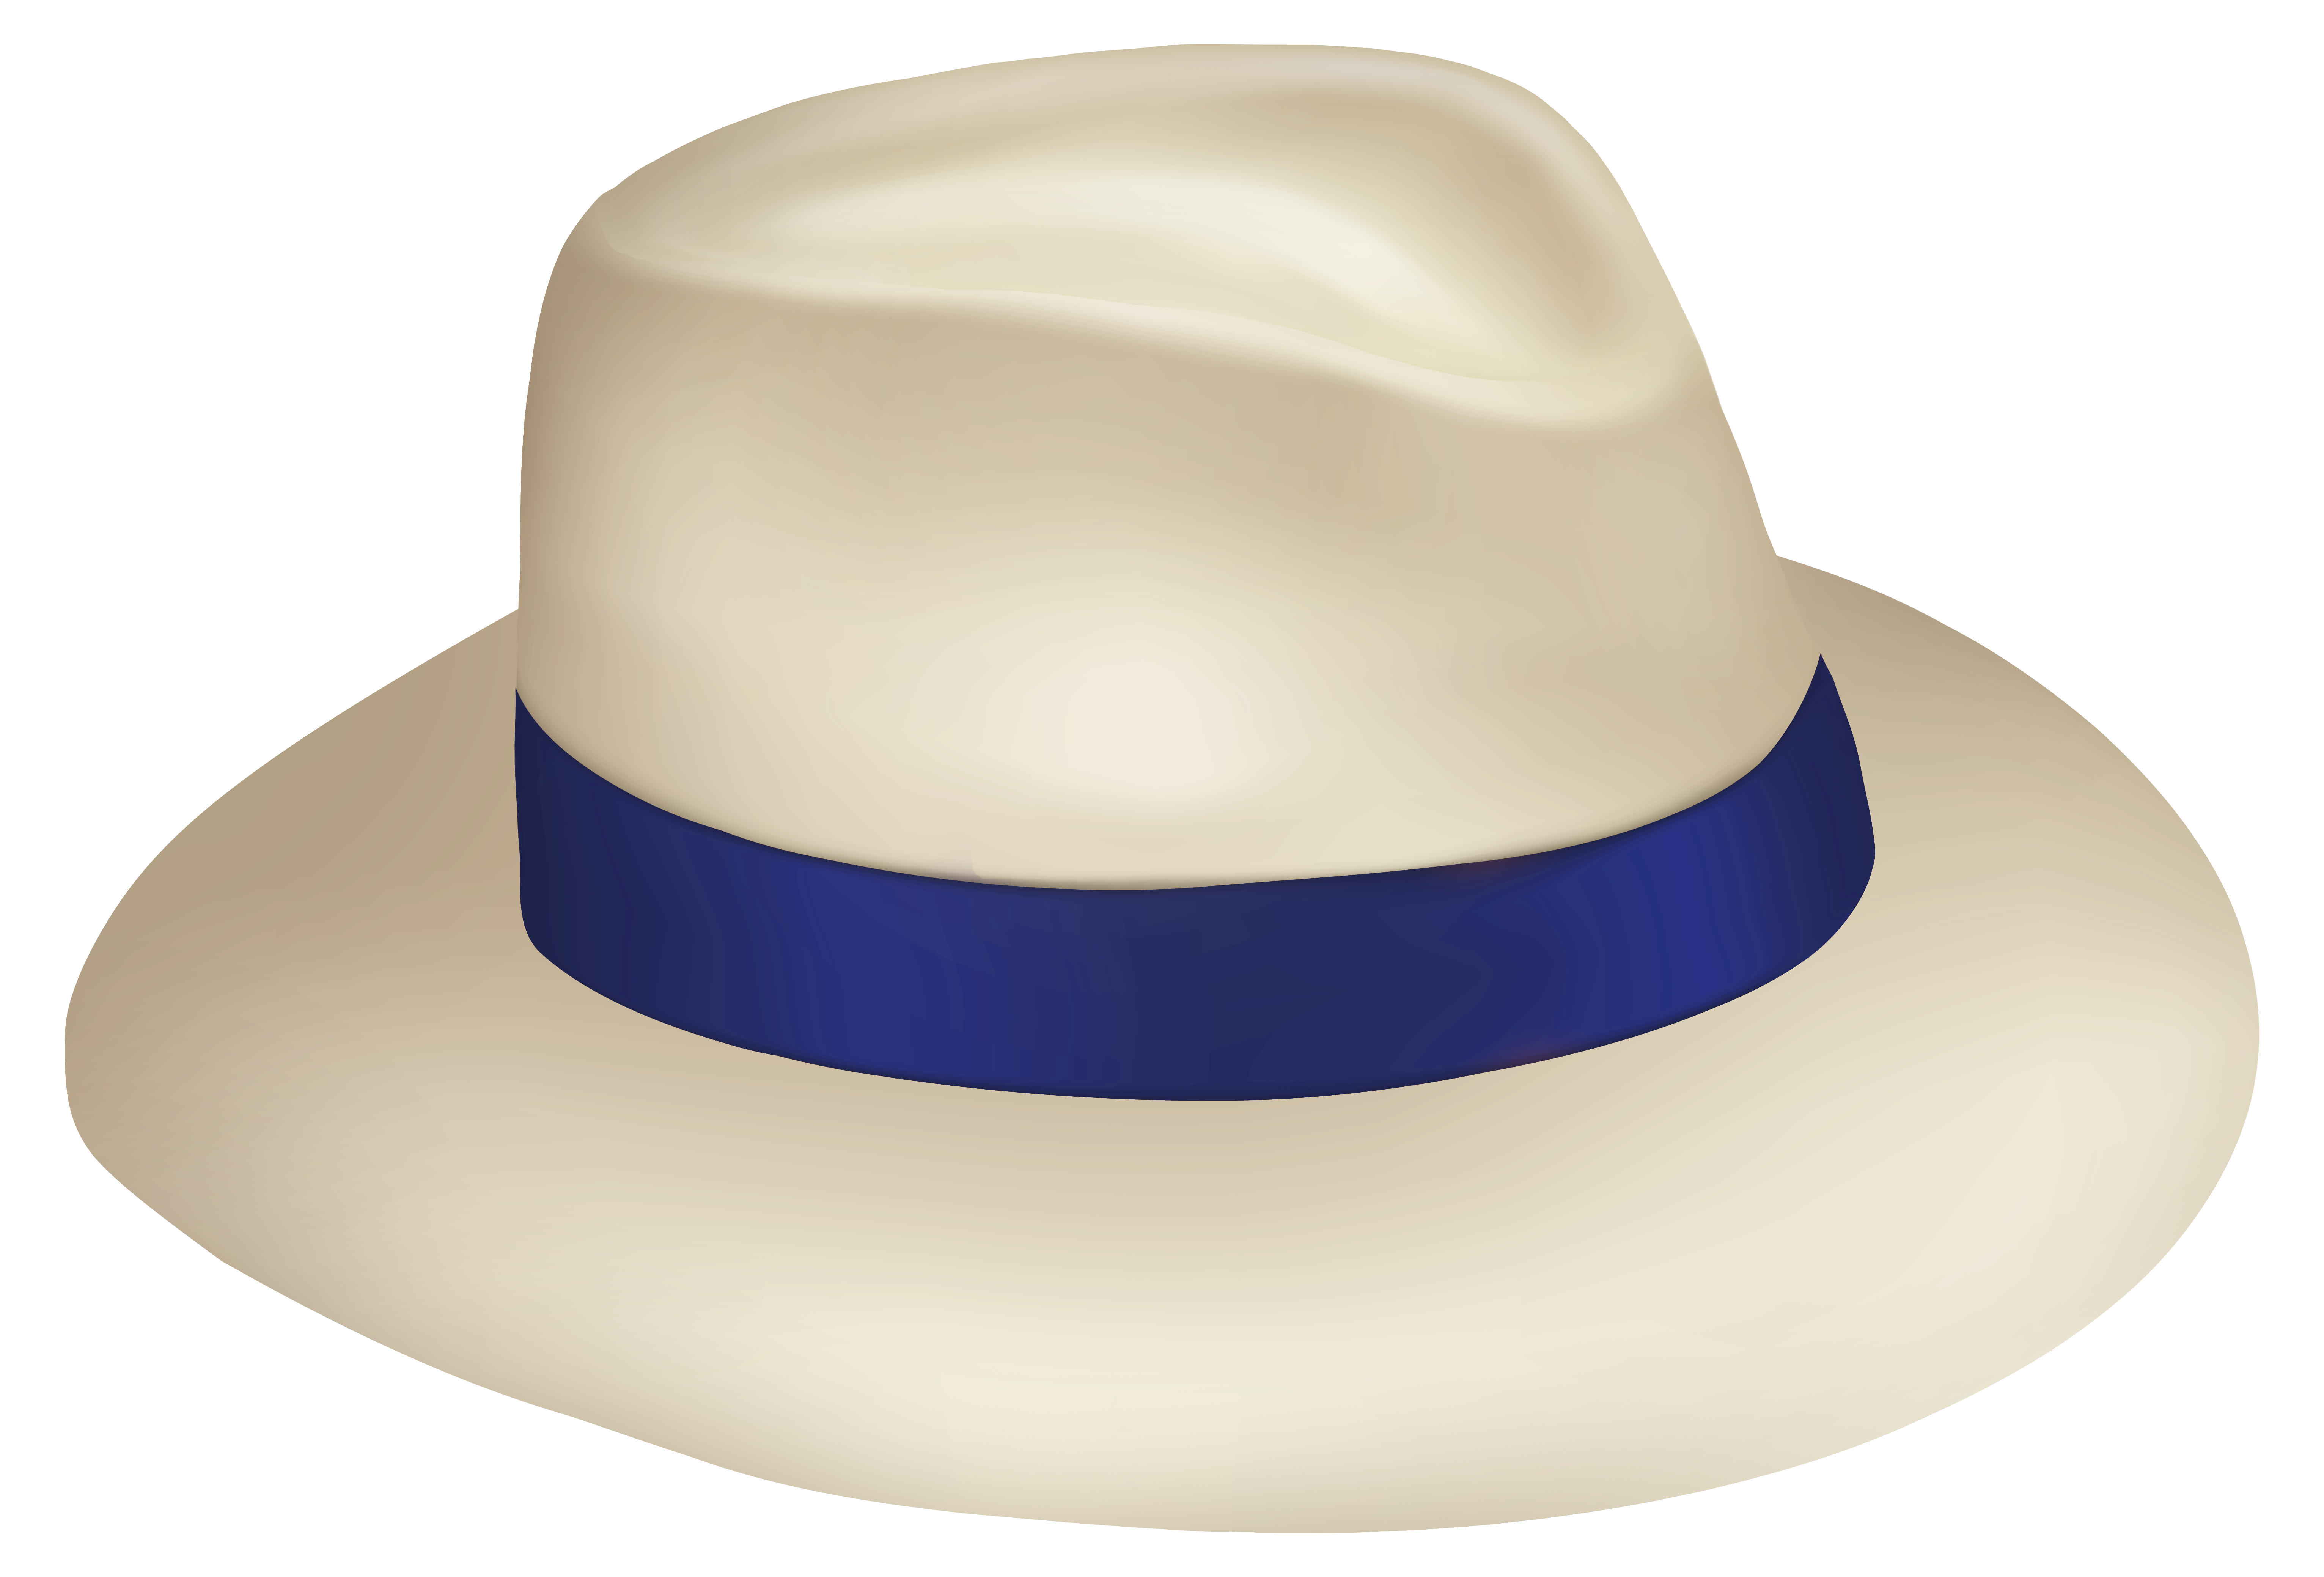 Fedora clipart blue. Panama sun hat with